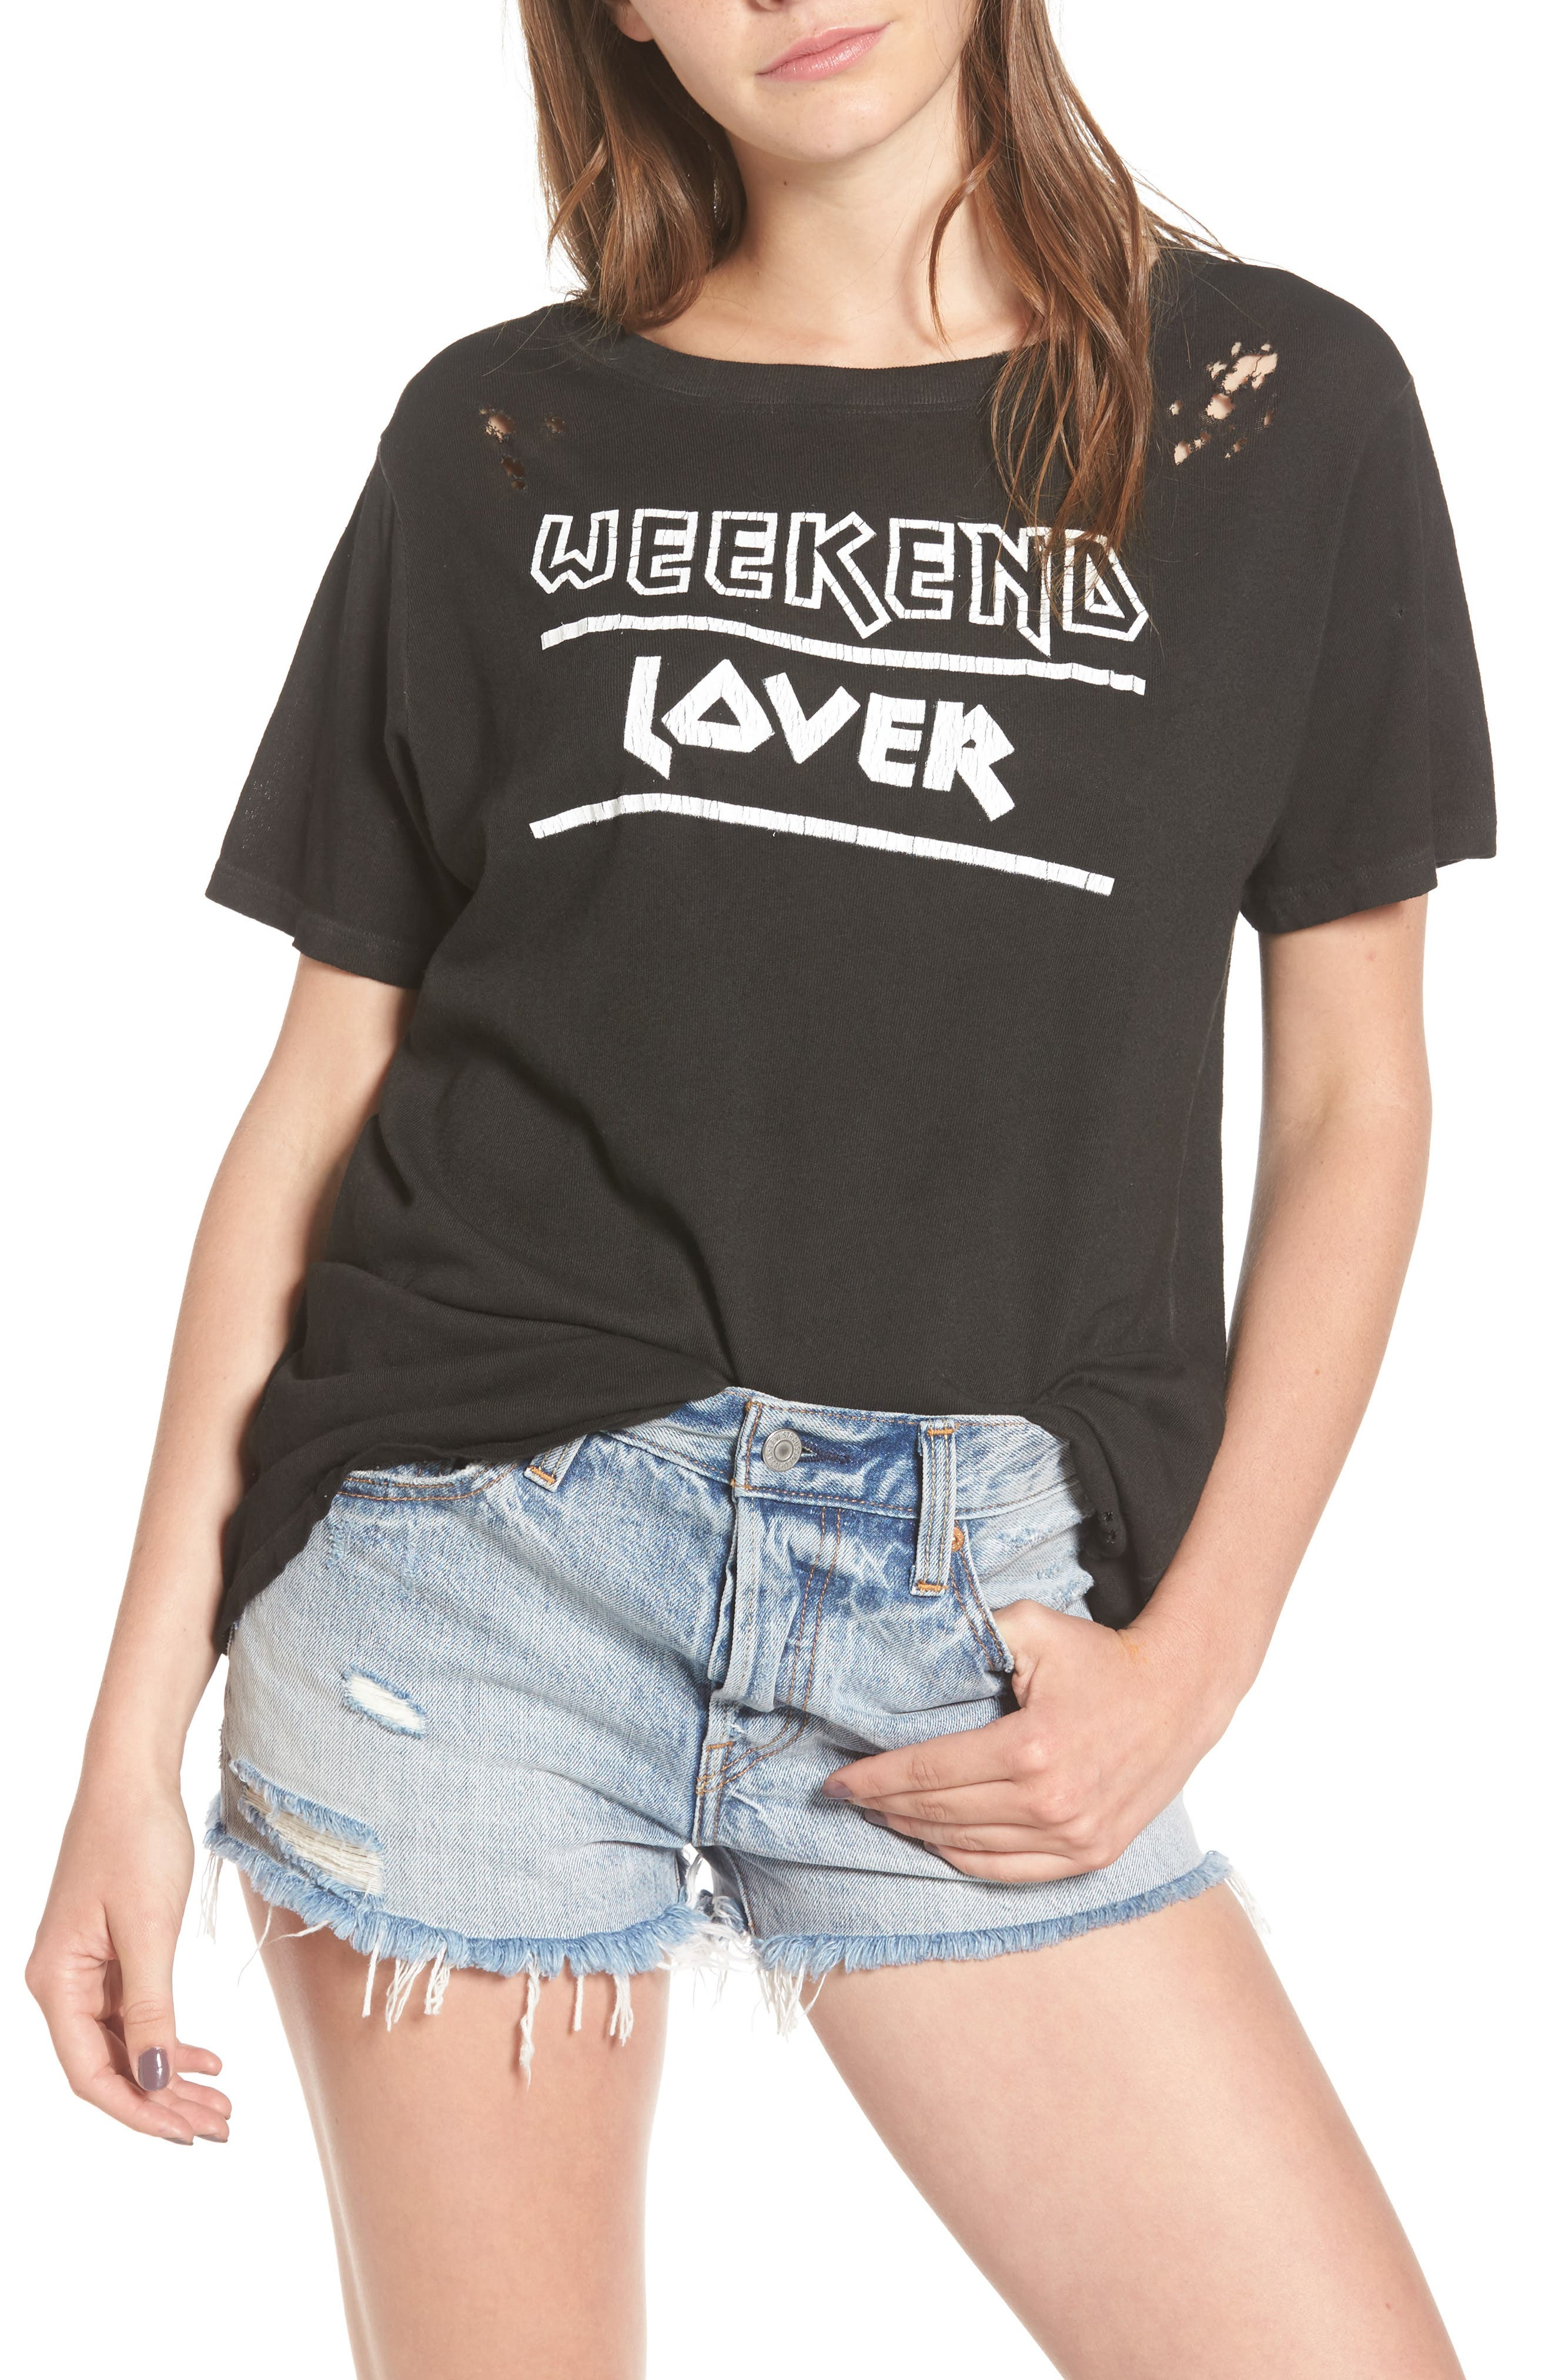 PRINCE PETER Weekend Lover Distressed Tee, Main, color, 001